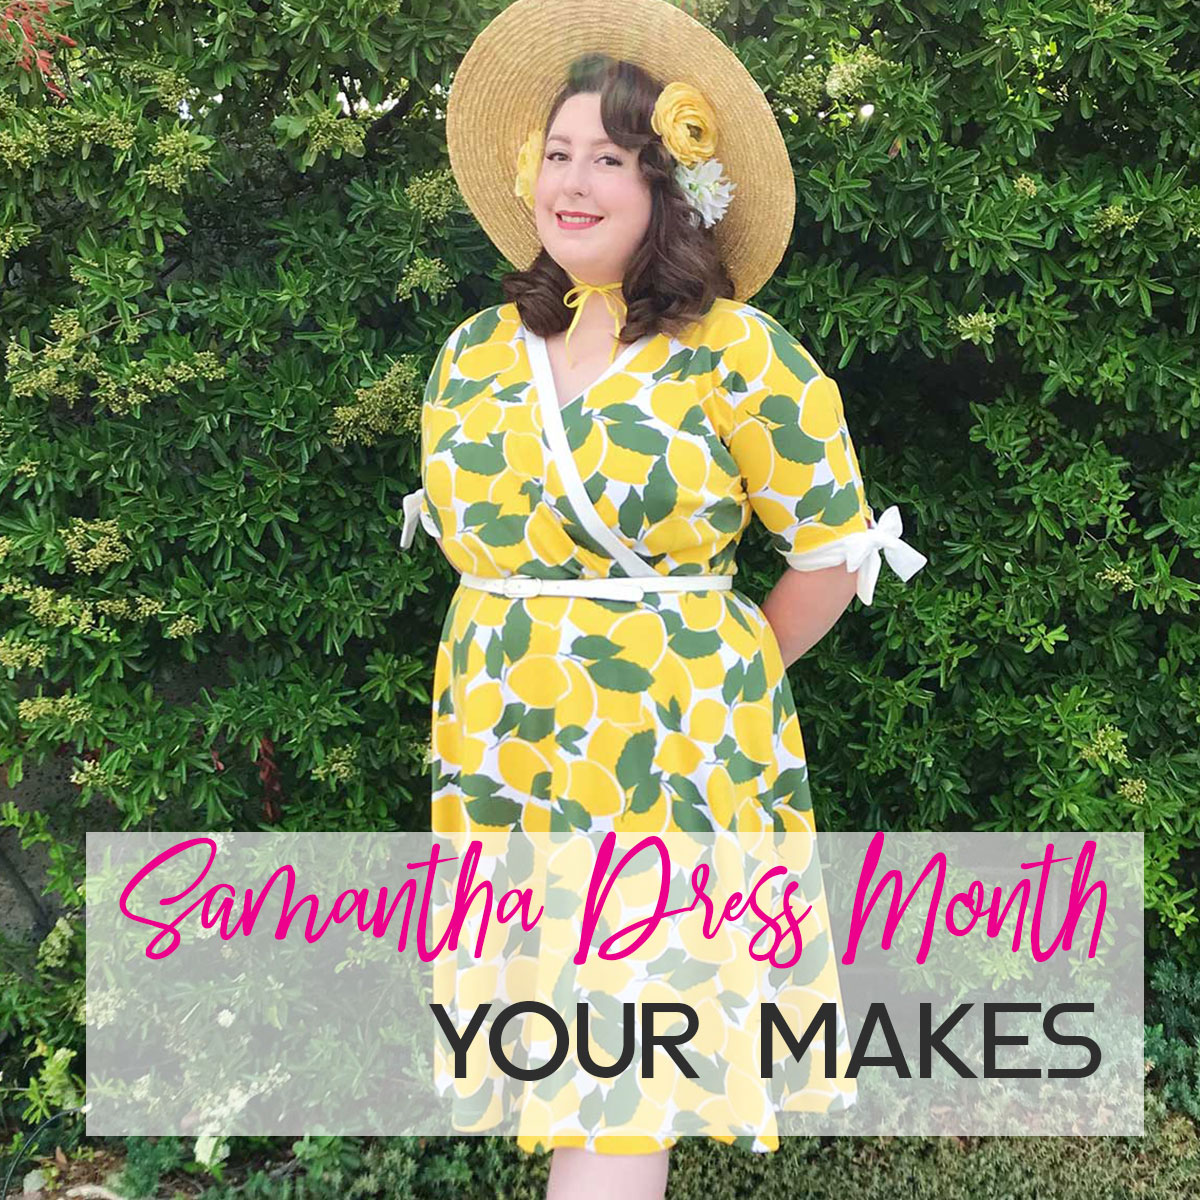 c95d9d920d As you know, the entire month of April was dedicated to the Samantha dress,  while we were celebrating the pattern's first birthday.